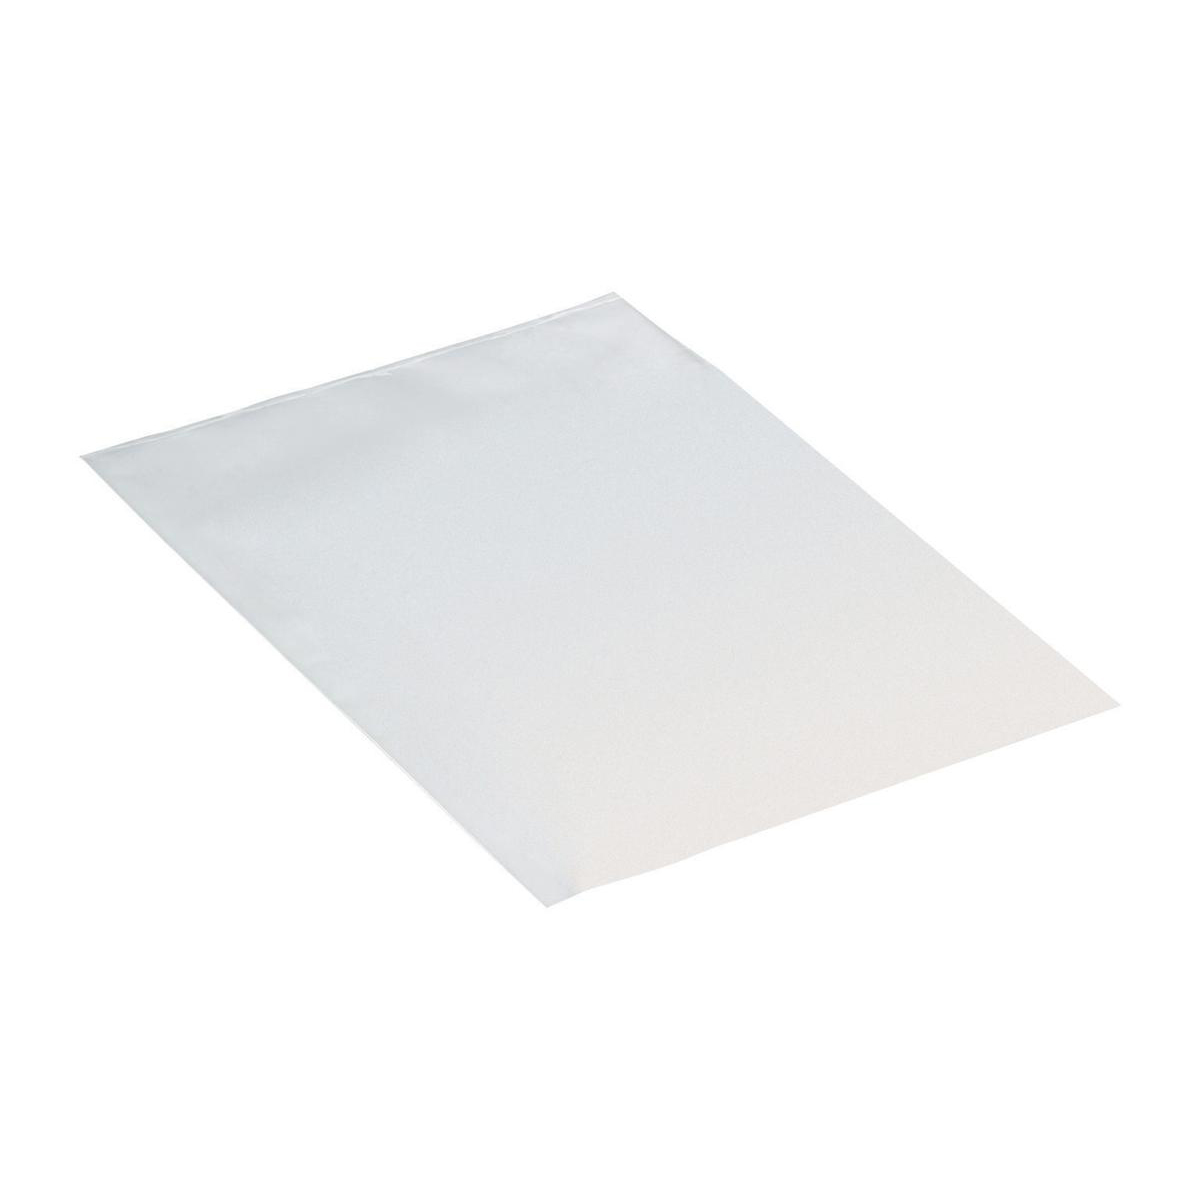 Image for Polythene Bags 450x600mm 25 Micron Clear [Pack 500] (0)